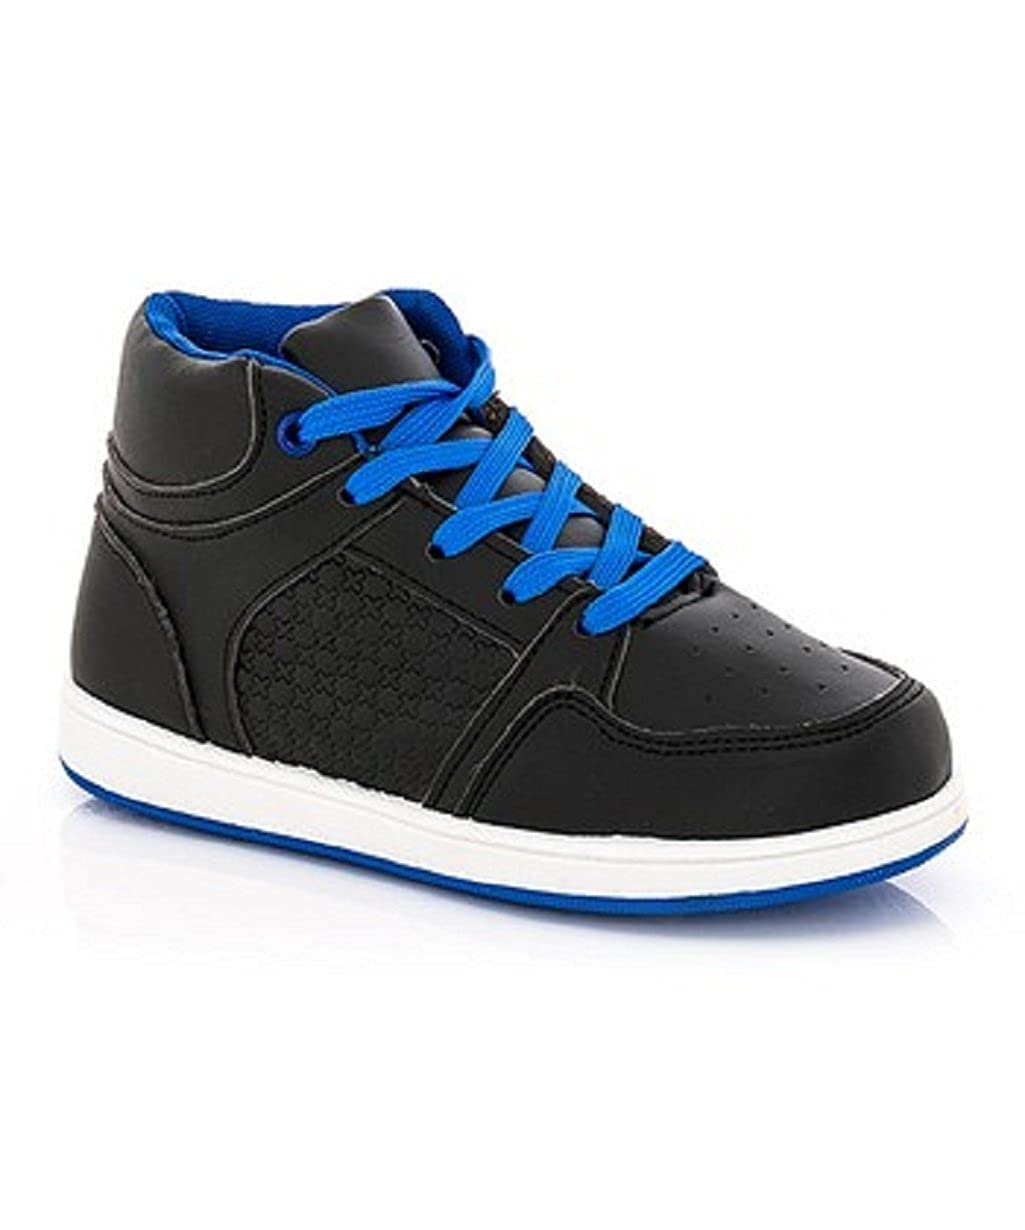 C J Baby Boys Black and Blue hi-top Sneaker Size